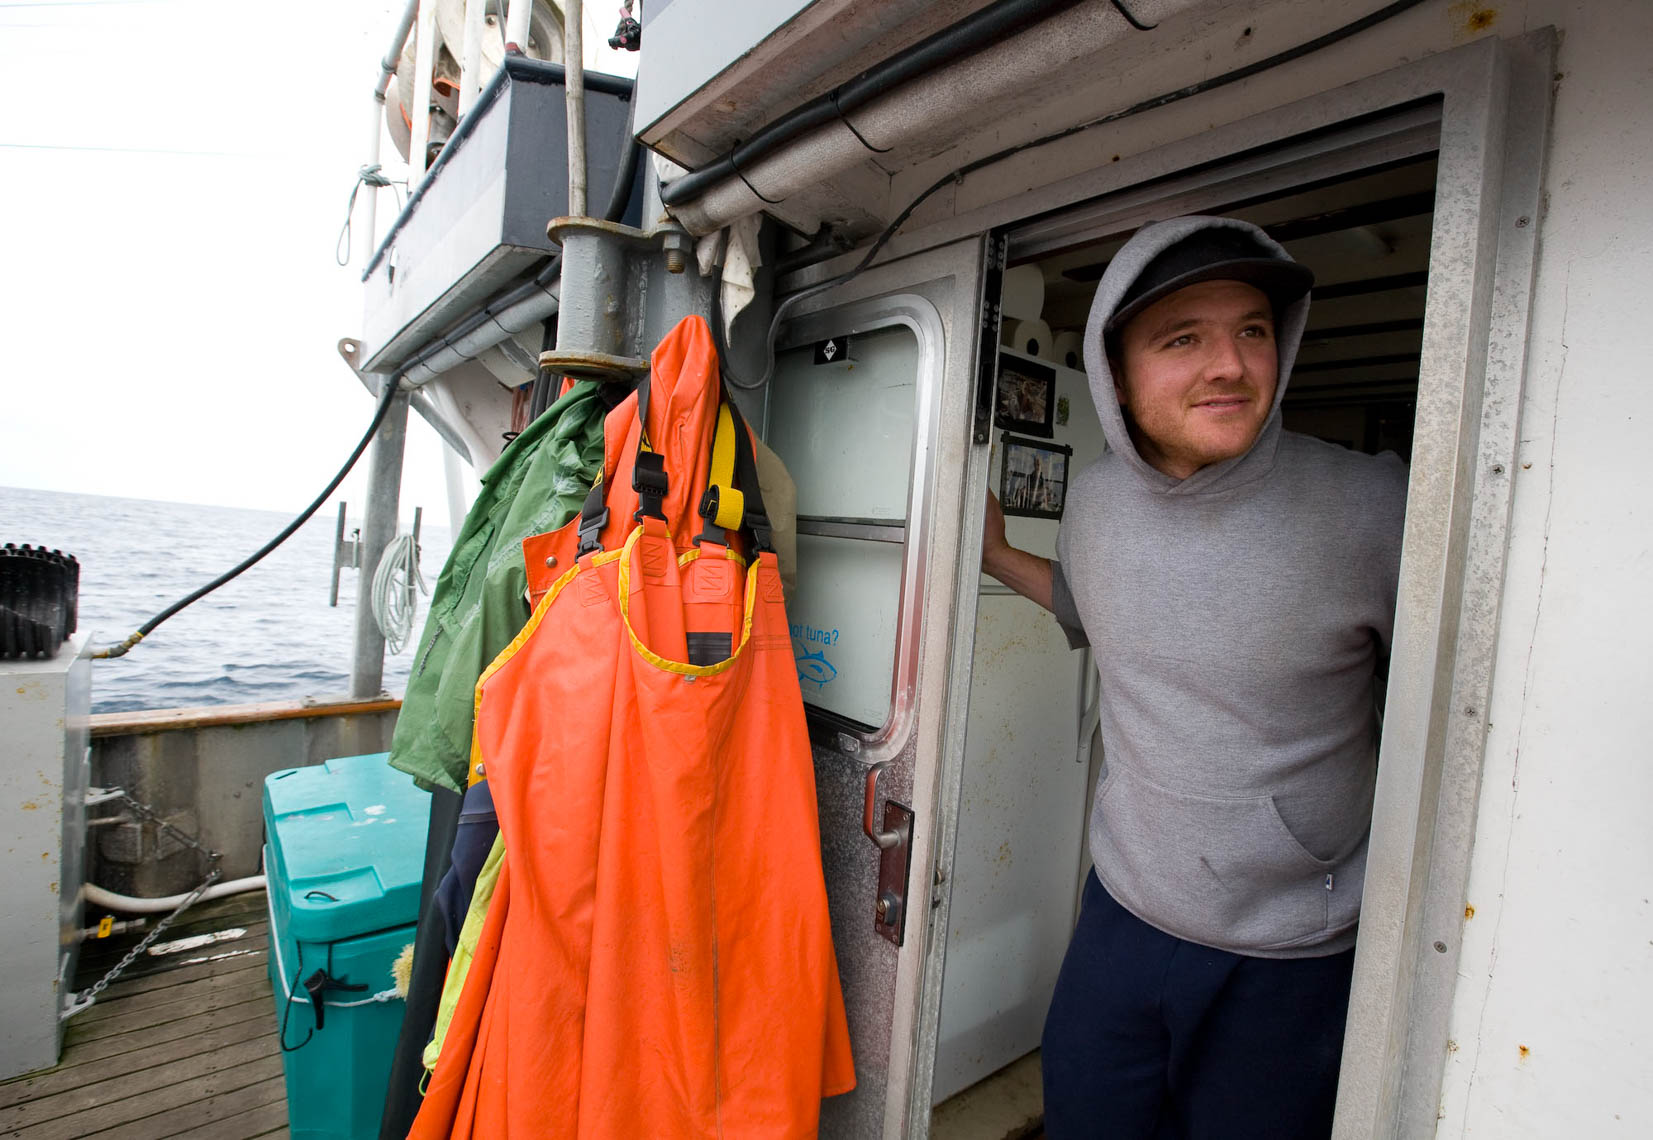 Tuna Boat Crewman Looks Outside